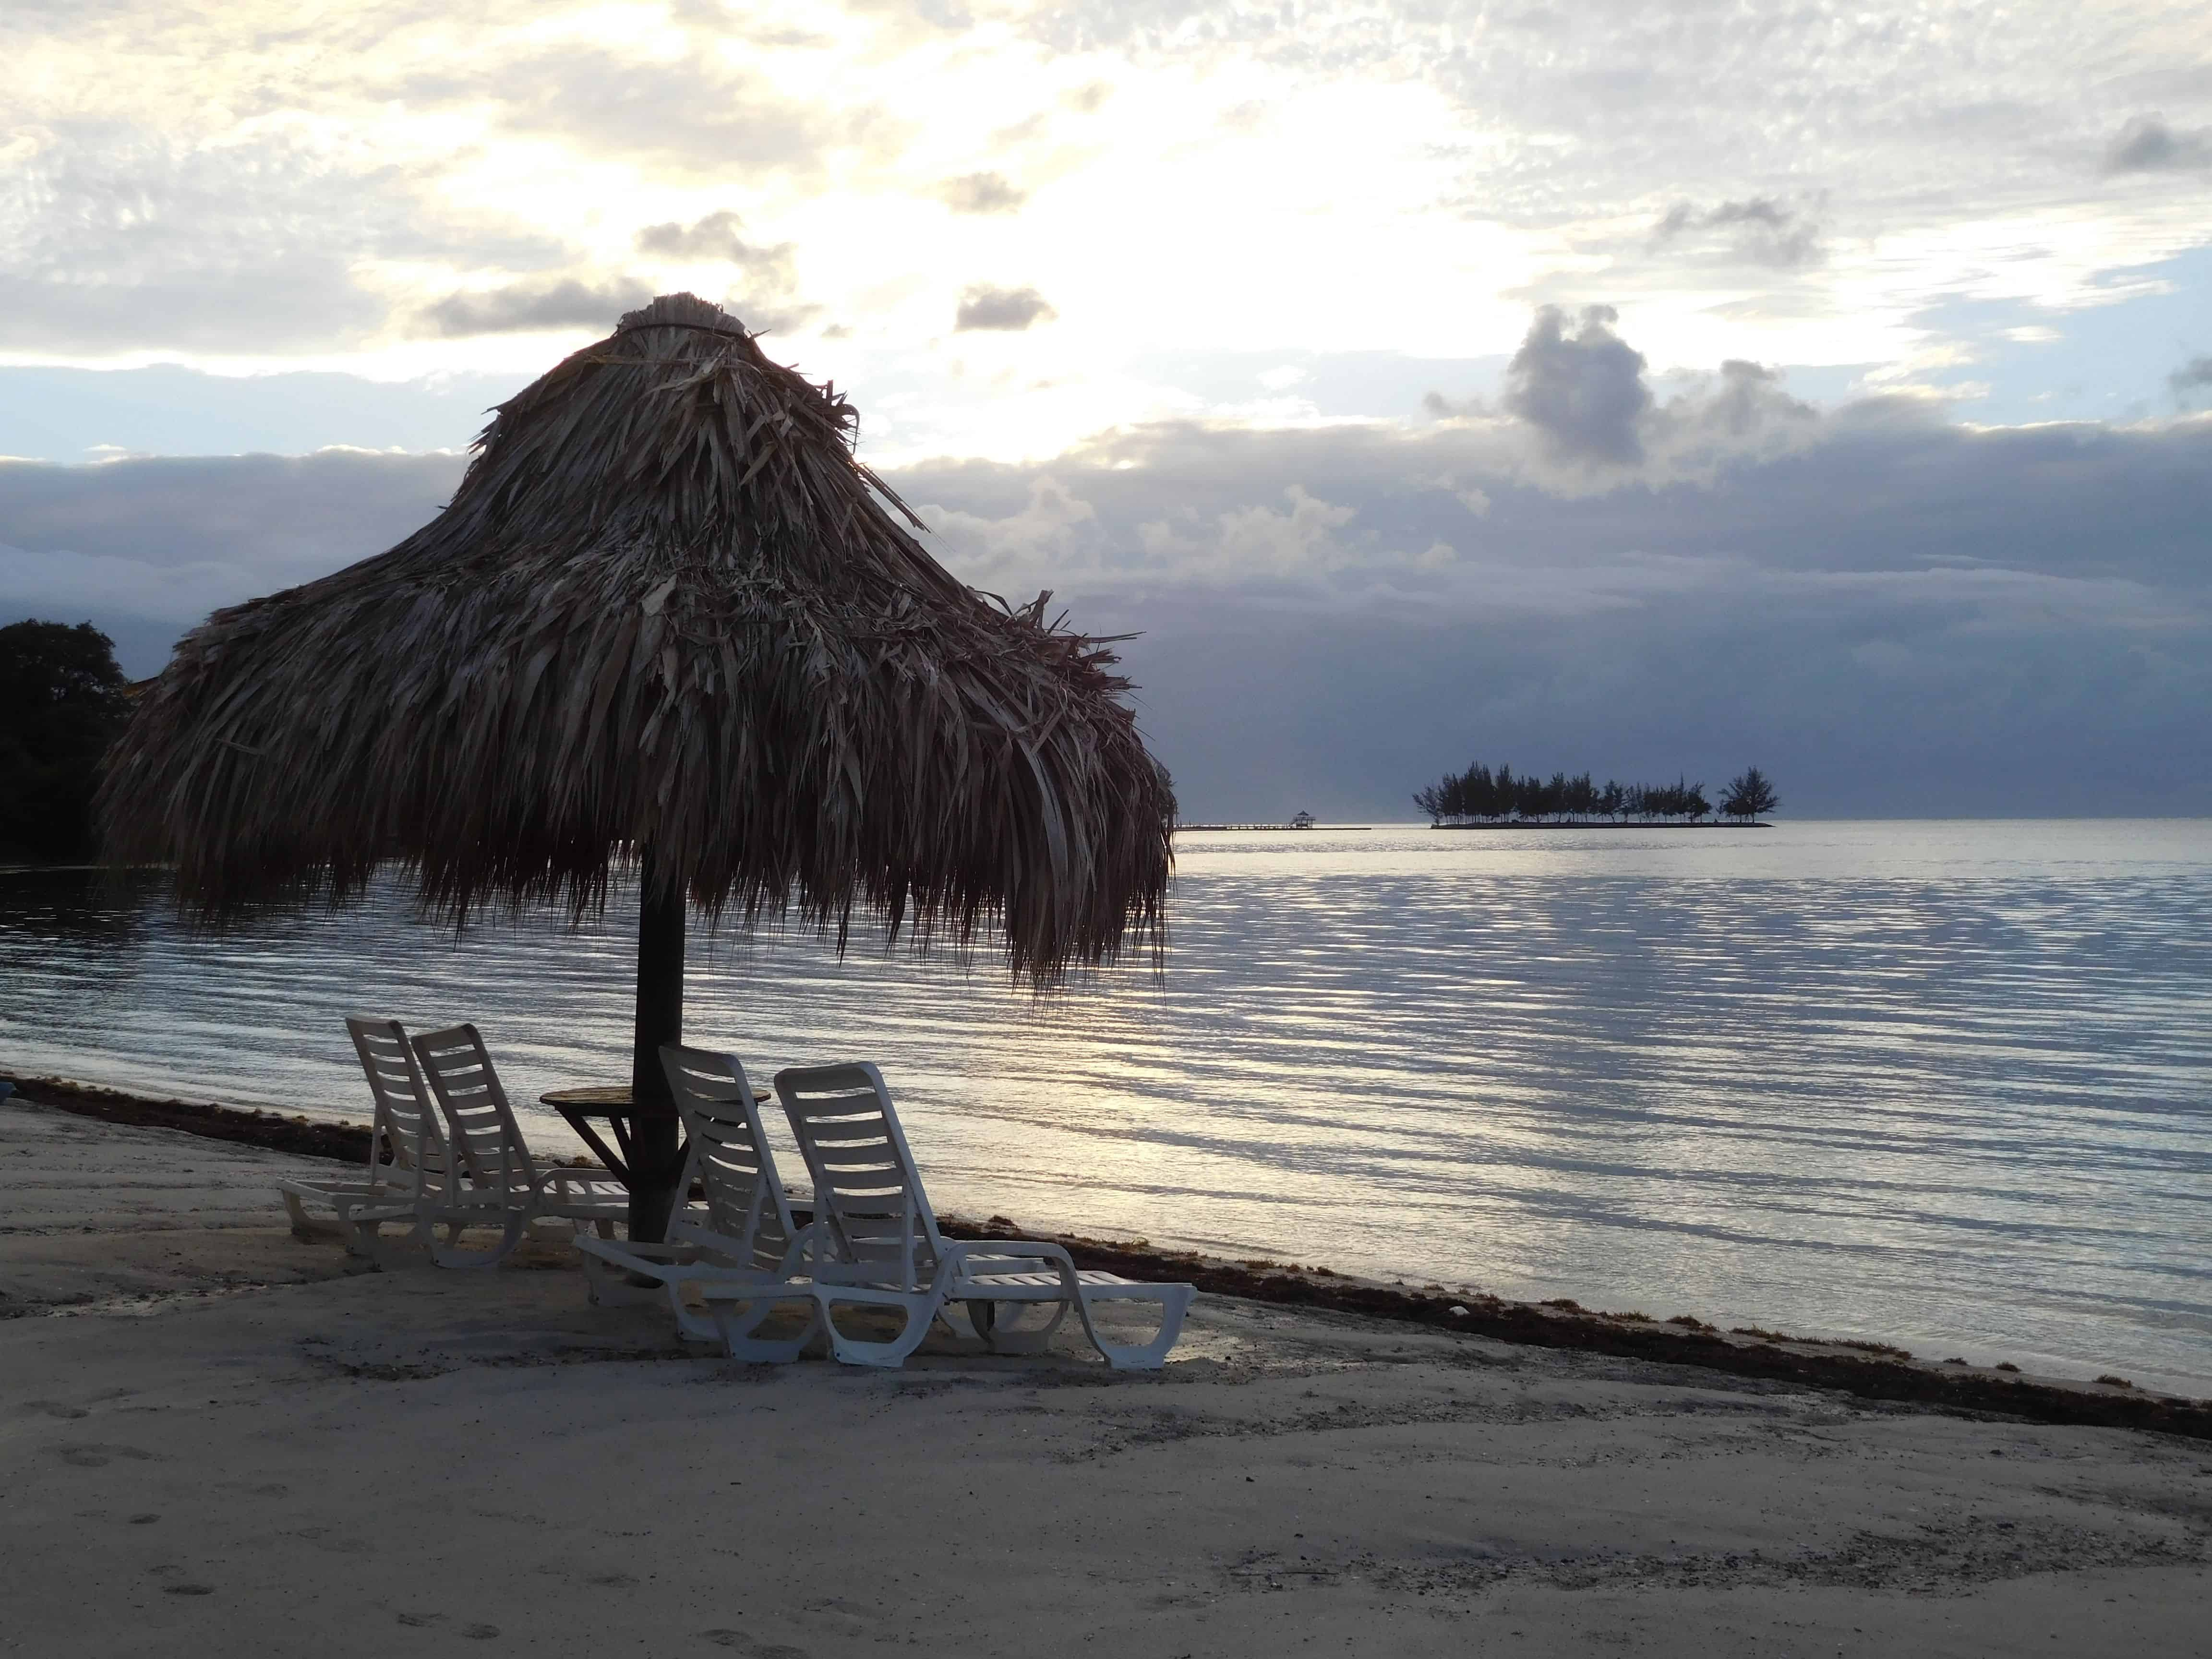 Turquoise Bay resort in Roatan on the Channel Islands Dive Adventures dive vacation